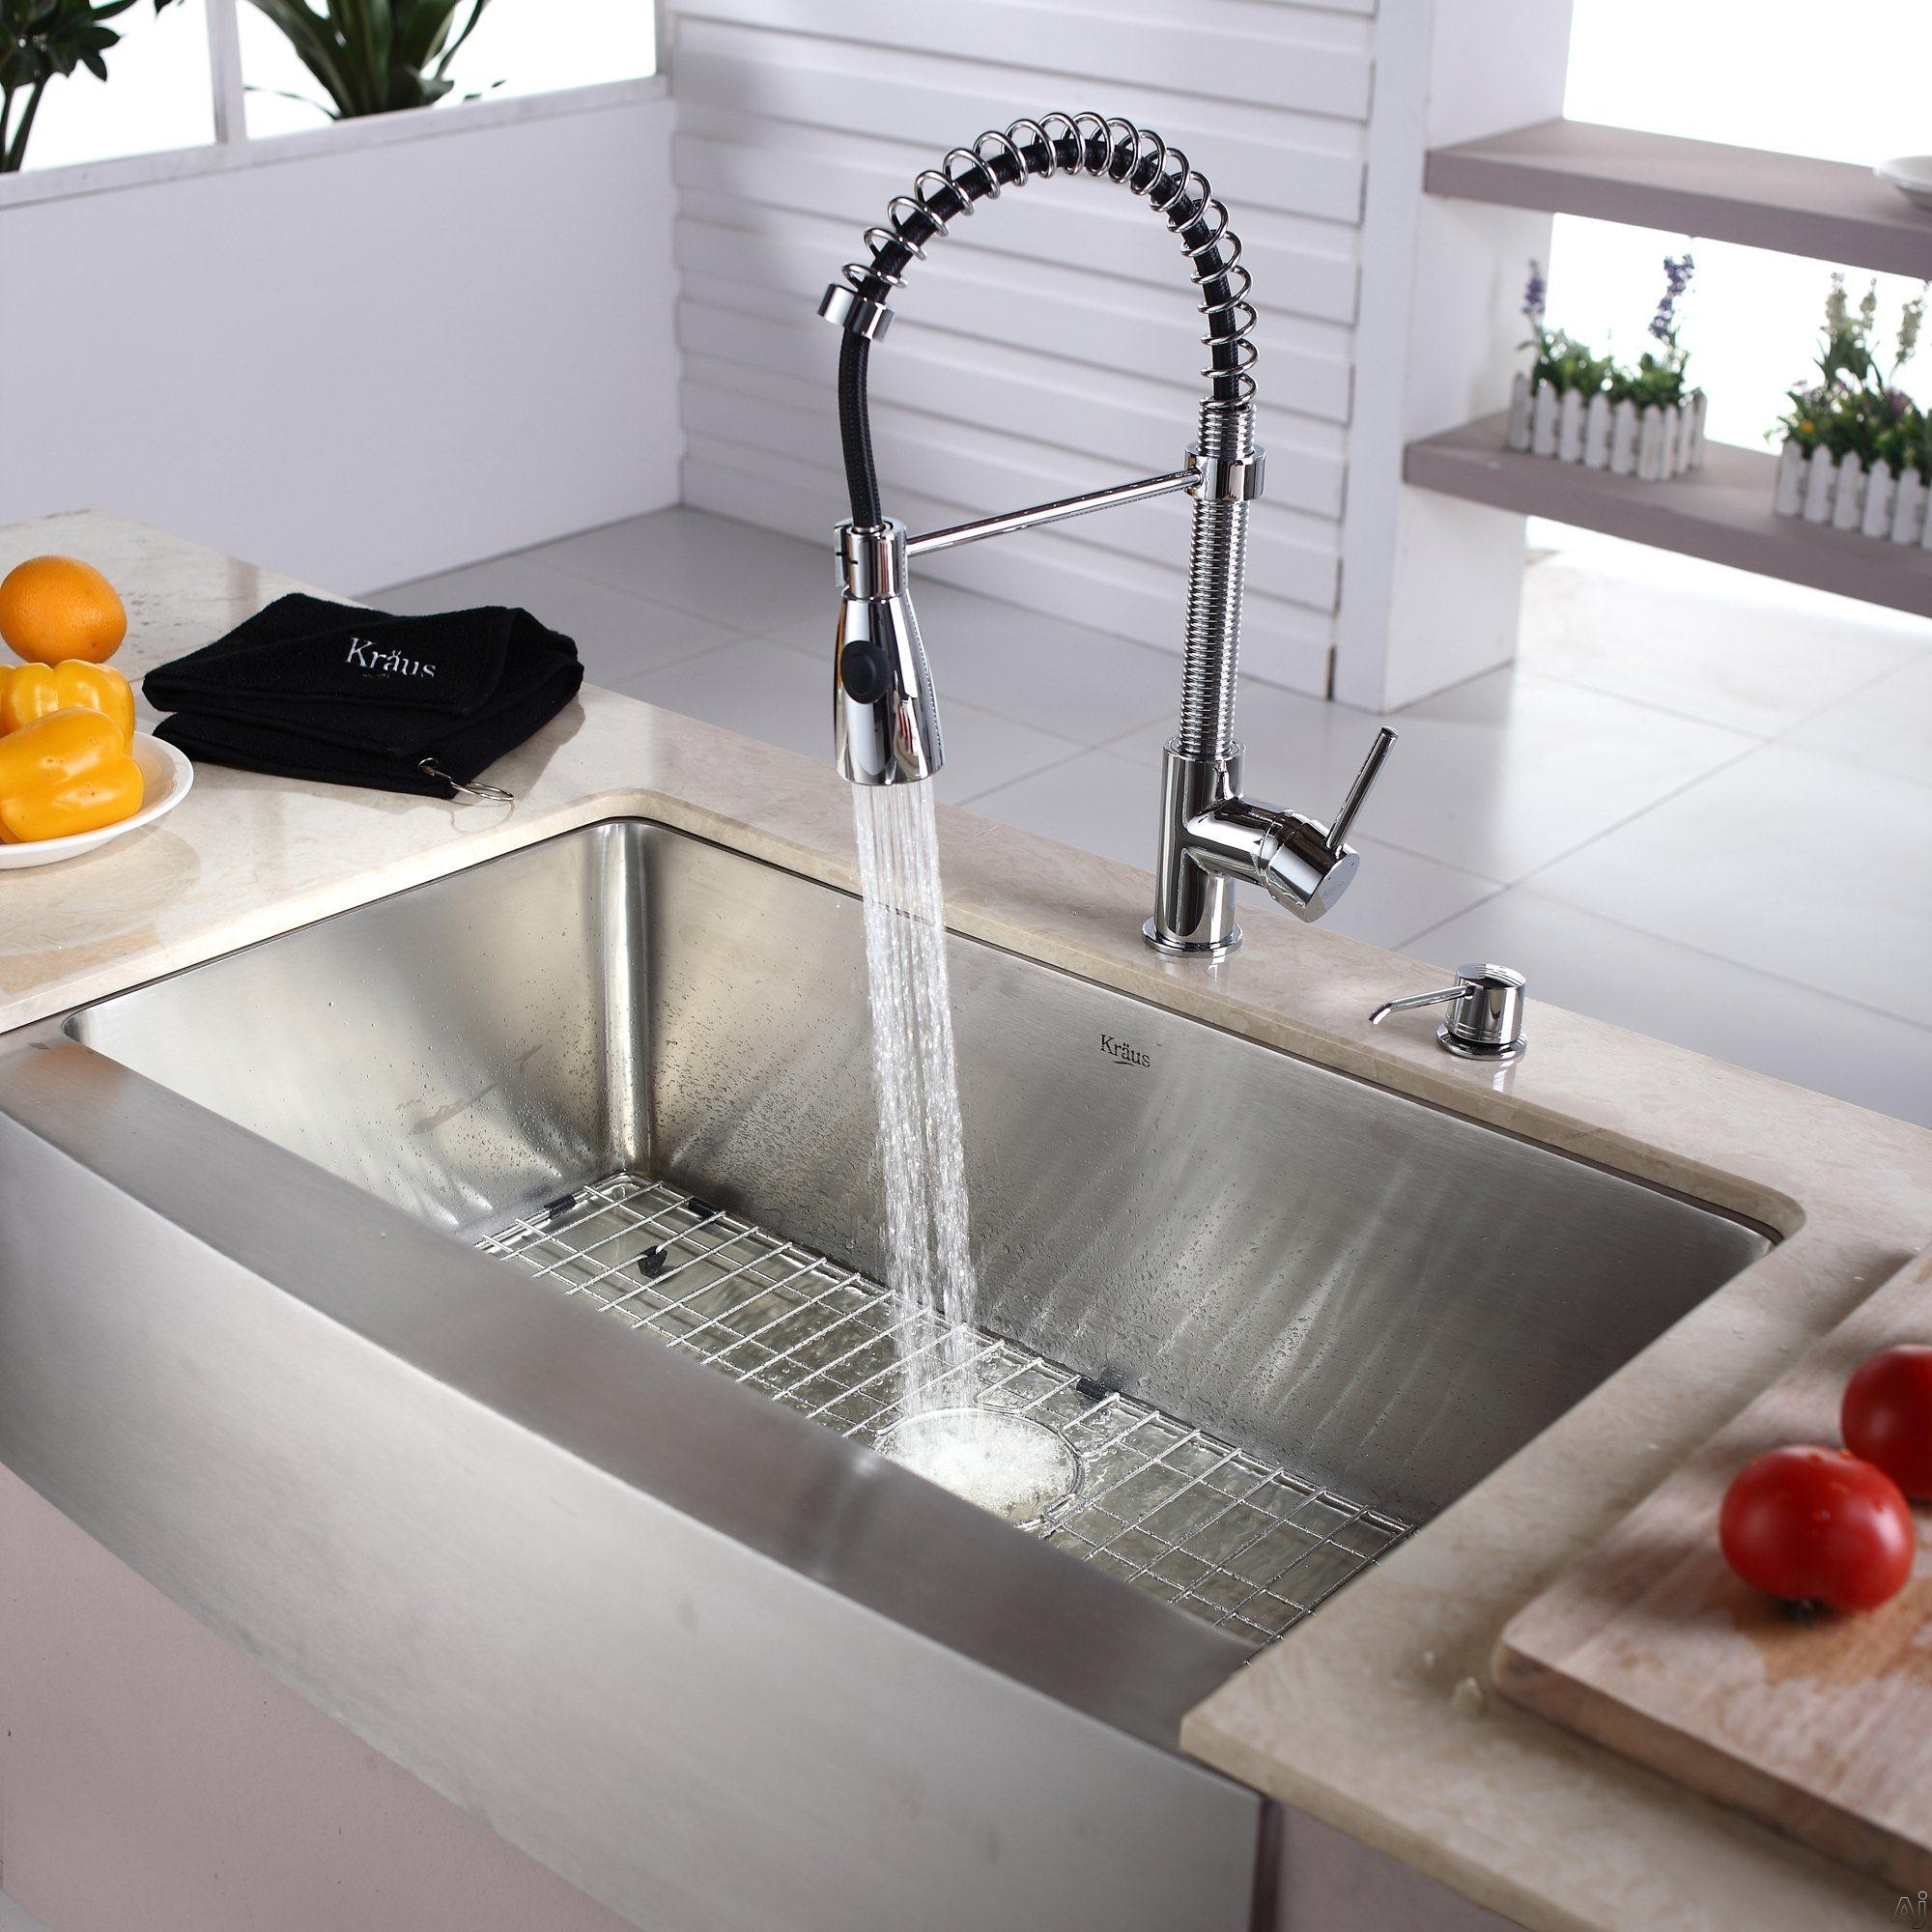 rectangle apron sink plus silver faucet on cream countertop for kitchen decor ideas